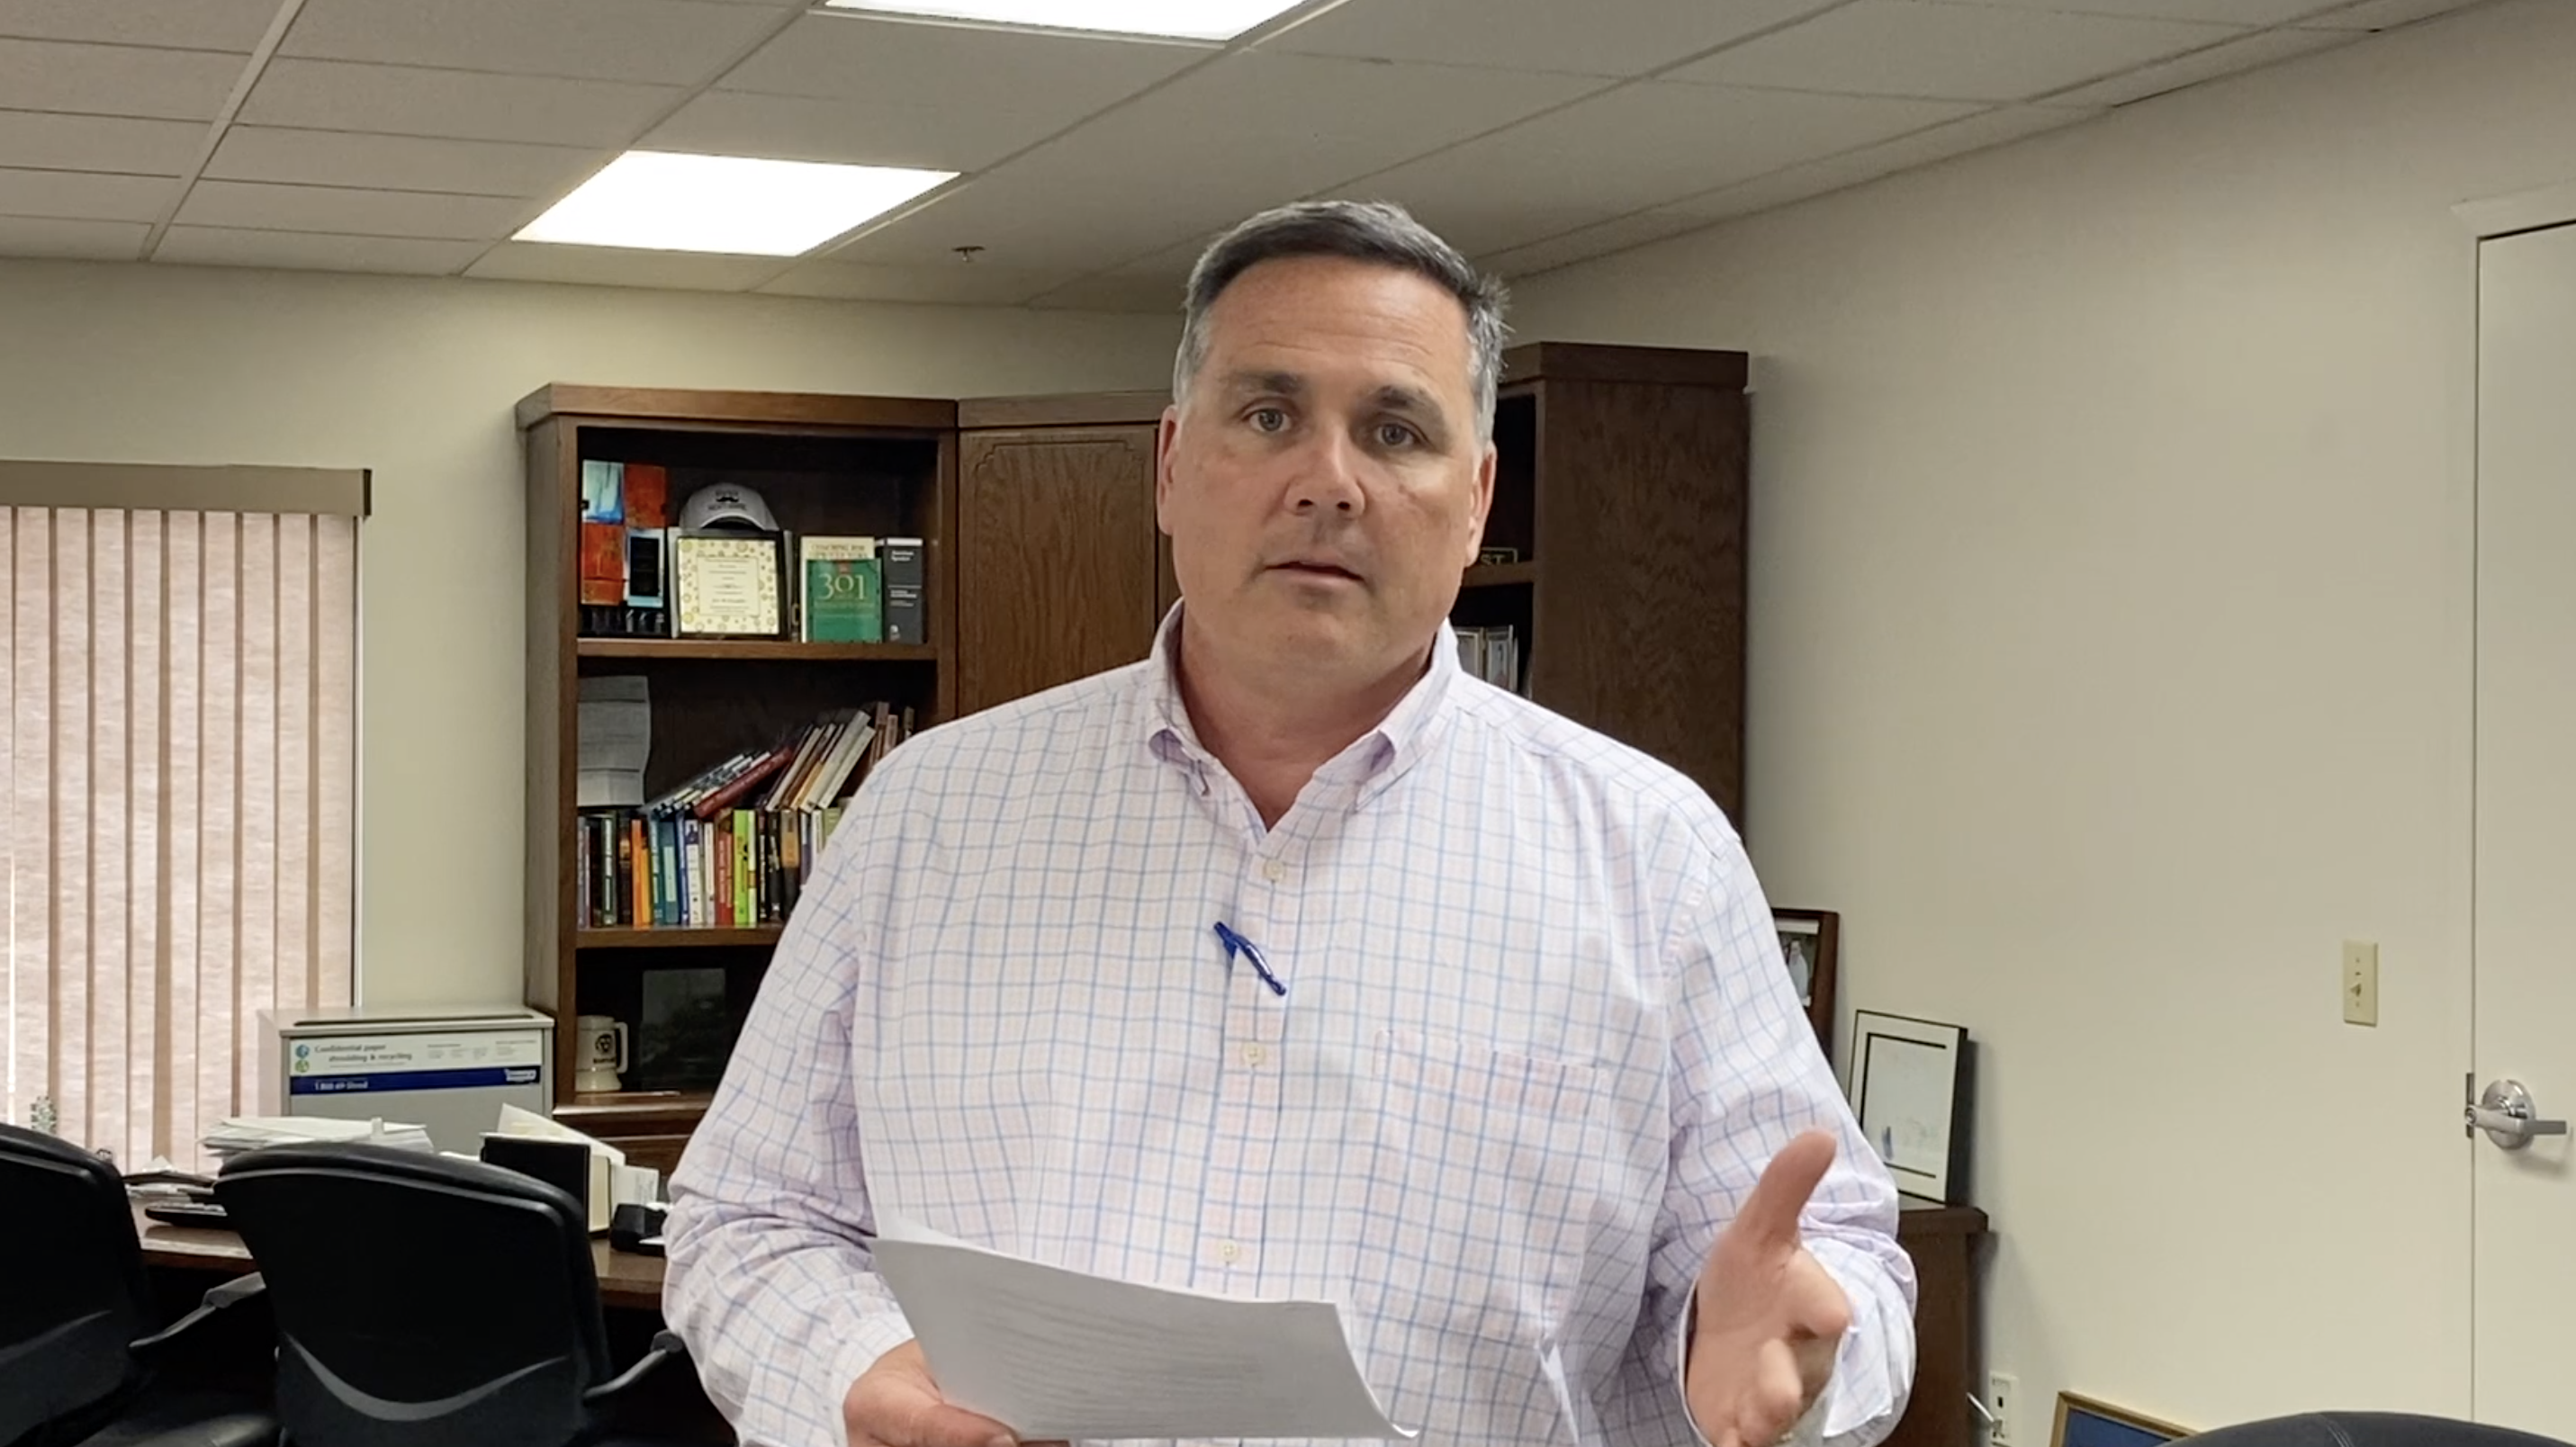 Jim McLaughlin COVID-19 Update: March 31, 2020